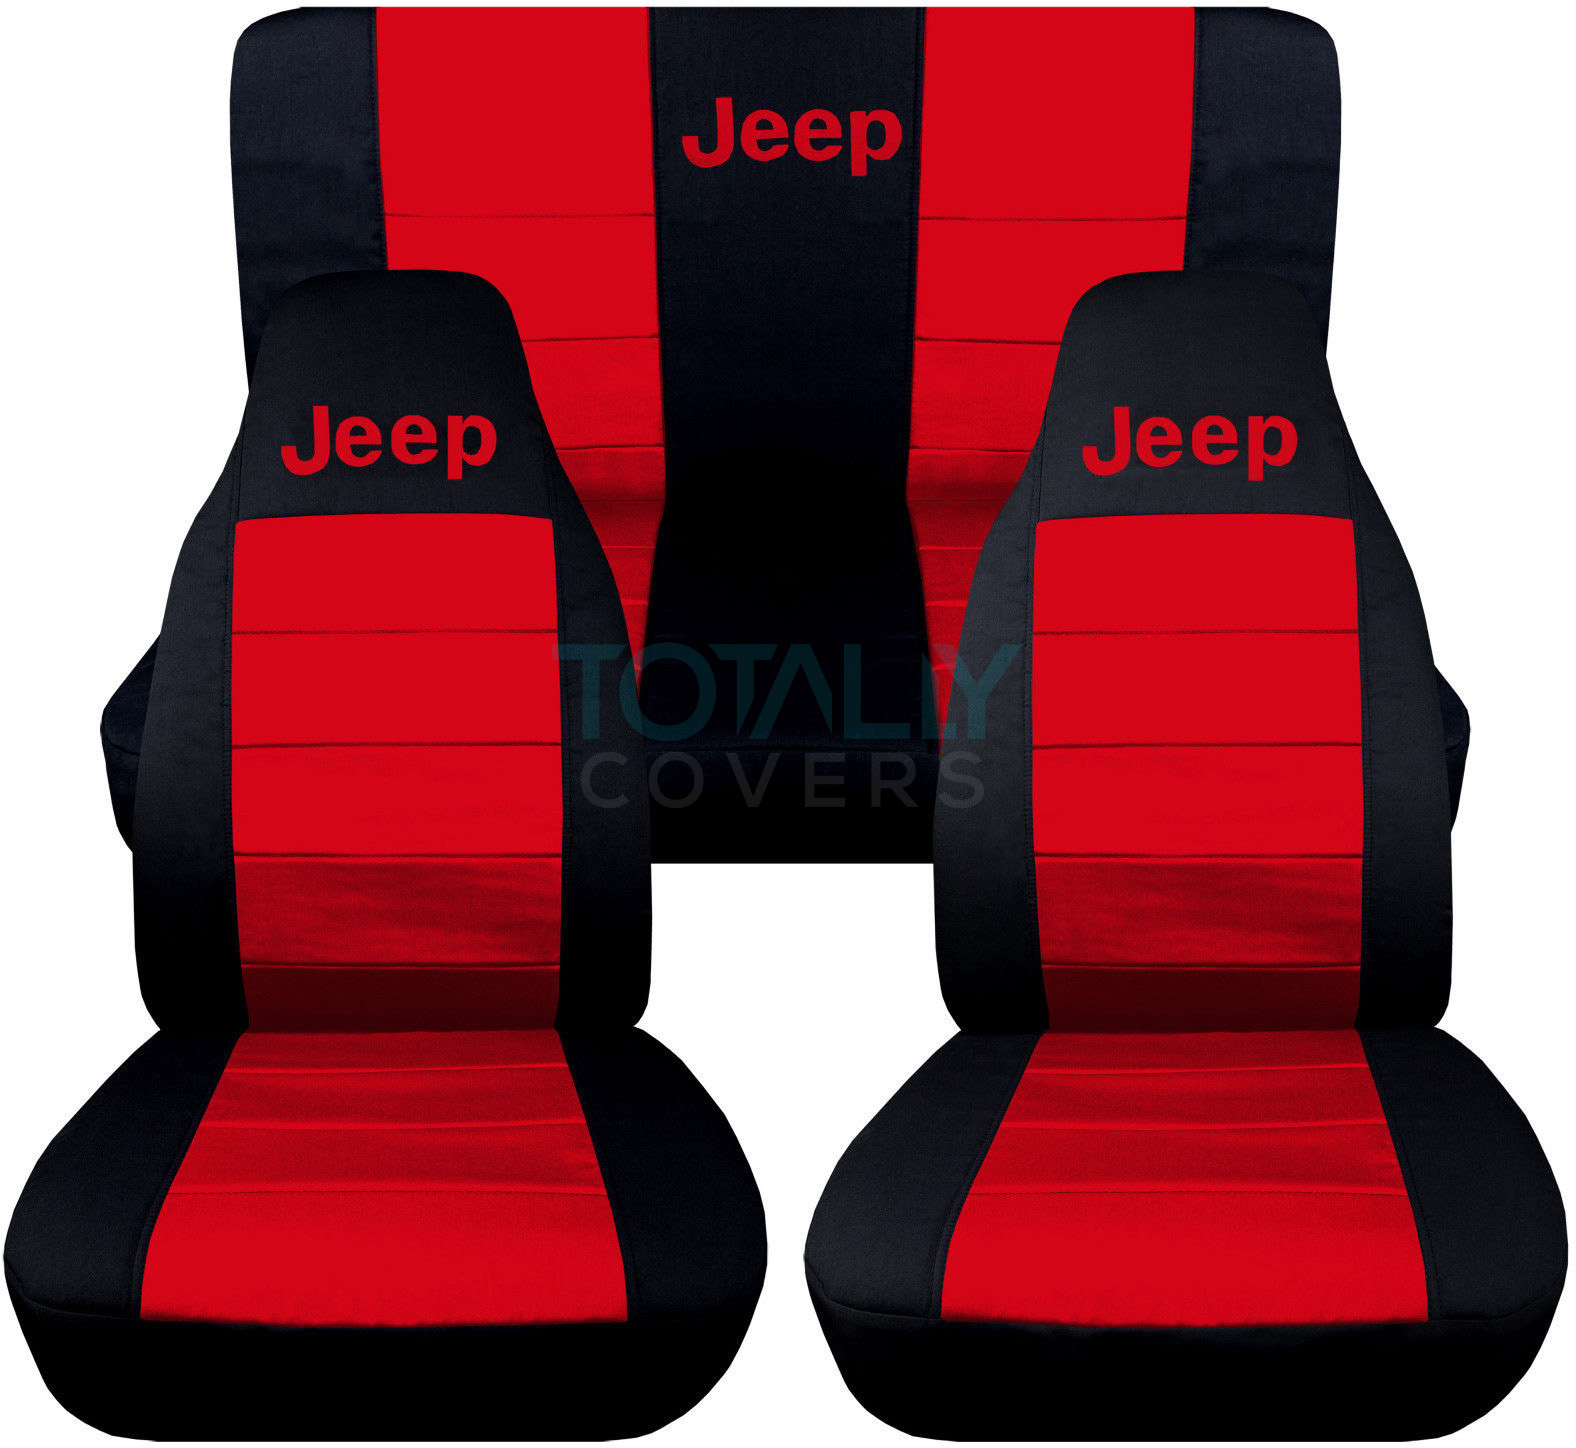 Jeep Wrangler Black And Red Logo Seat Covers